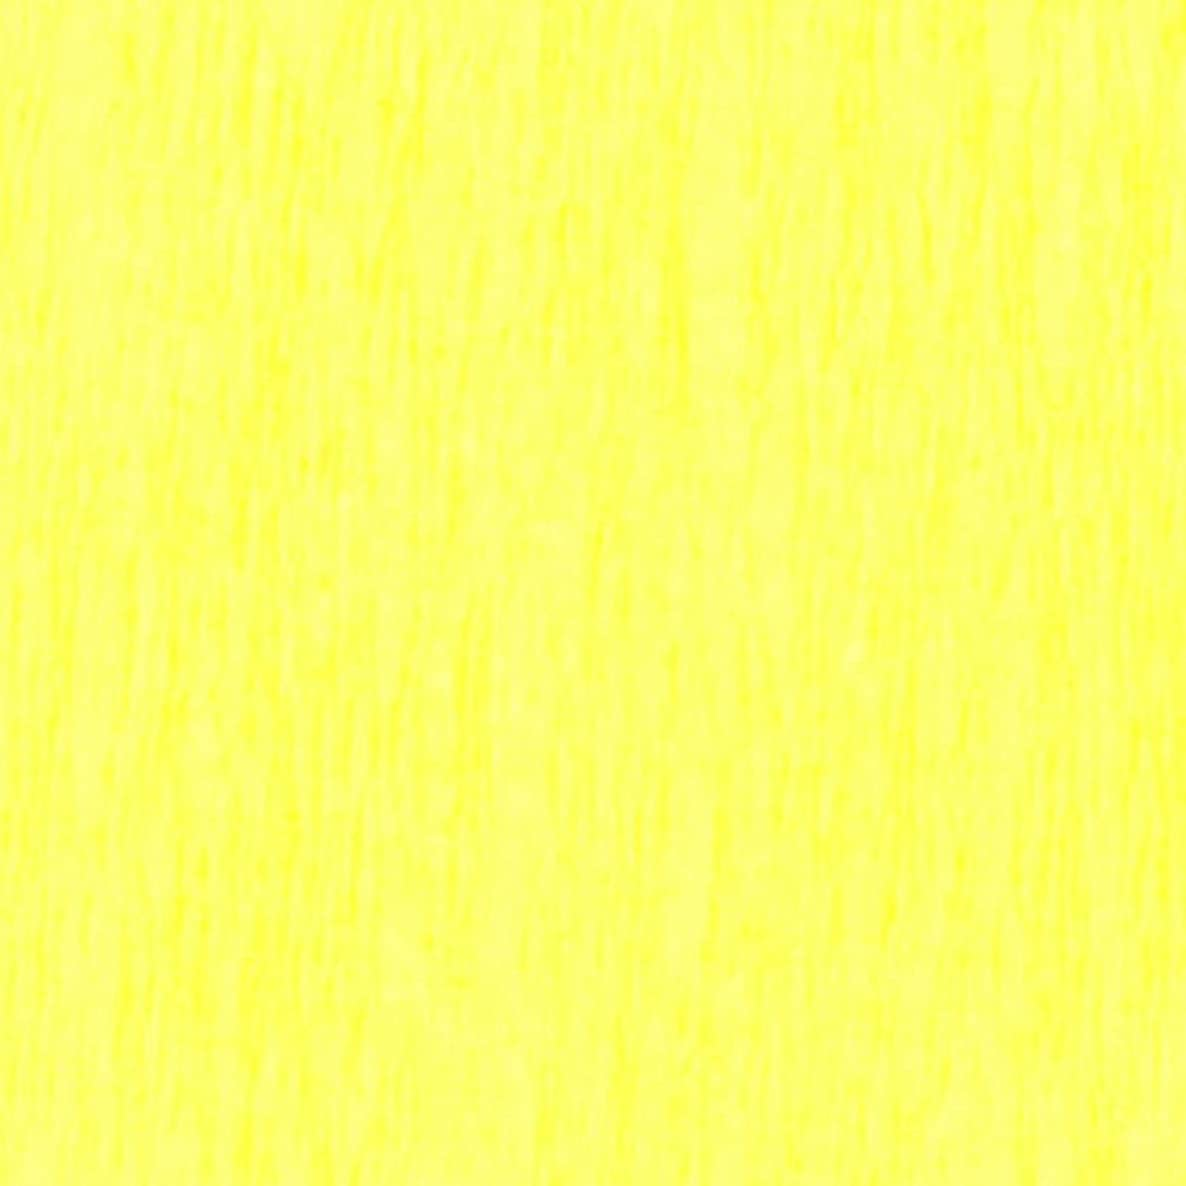 Clairefontaine Non-Bleeding Crepe Paper, 32 g, 2.5 x 0.50 m, Yellow